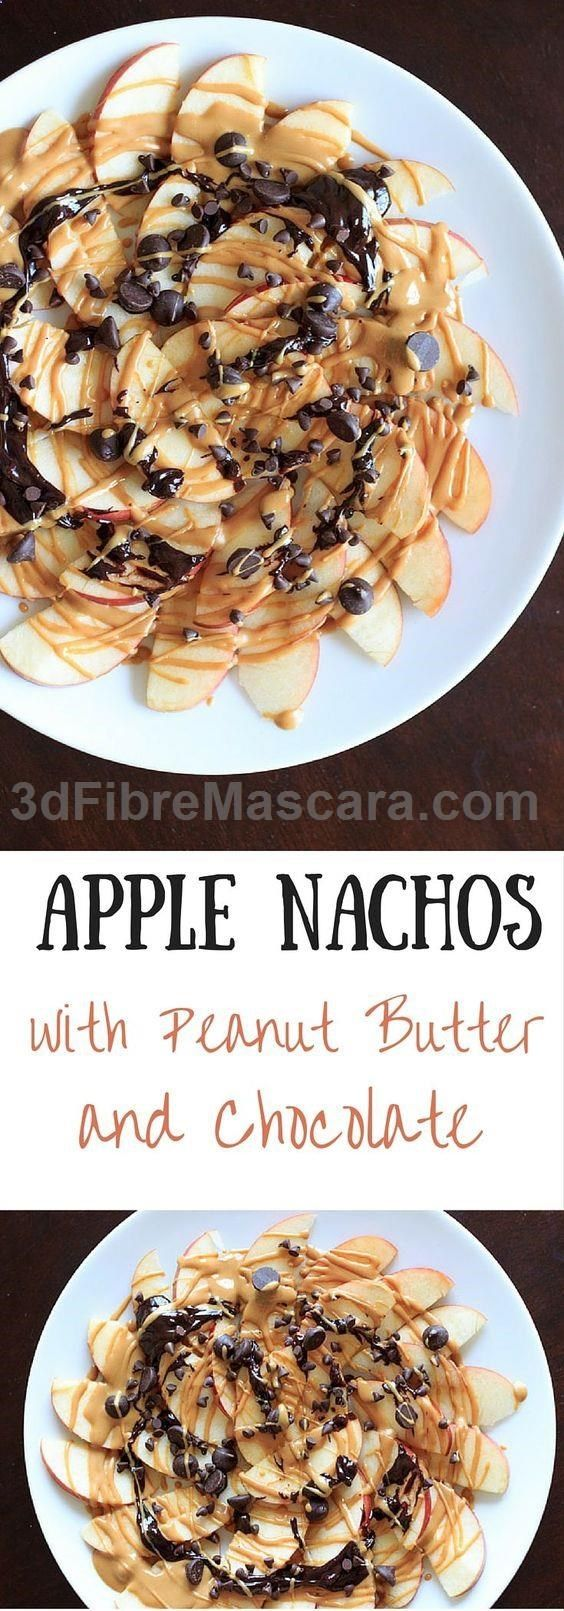 33 delicious new ways to eat peanut butter #diet #dieting #lowcalories #dietplan #excercise #diabetic #diabetes #slimming #weightloss #loseweight #loseweightfast